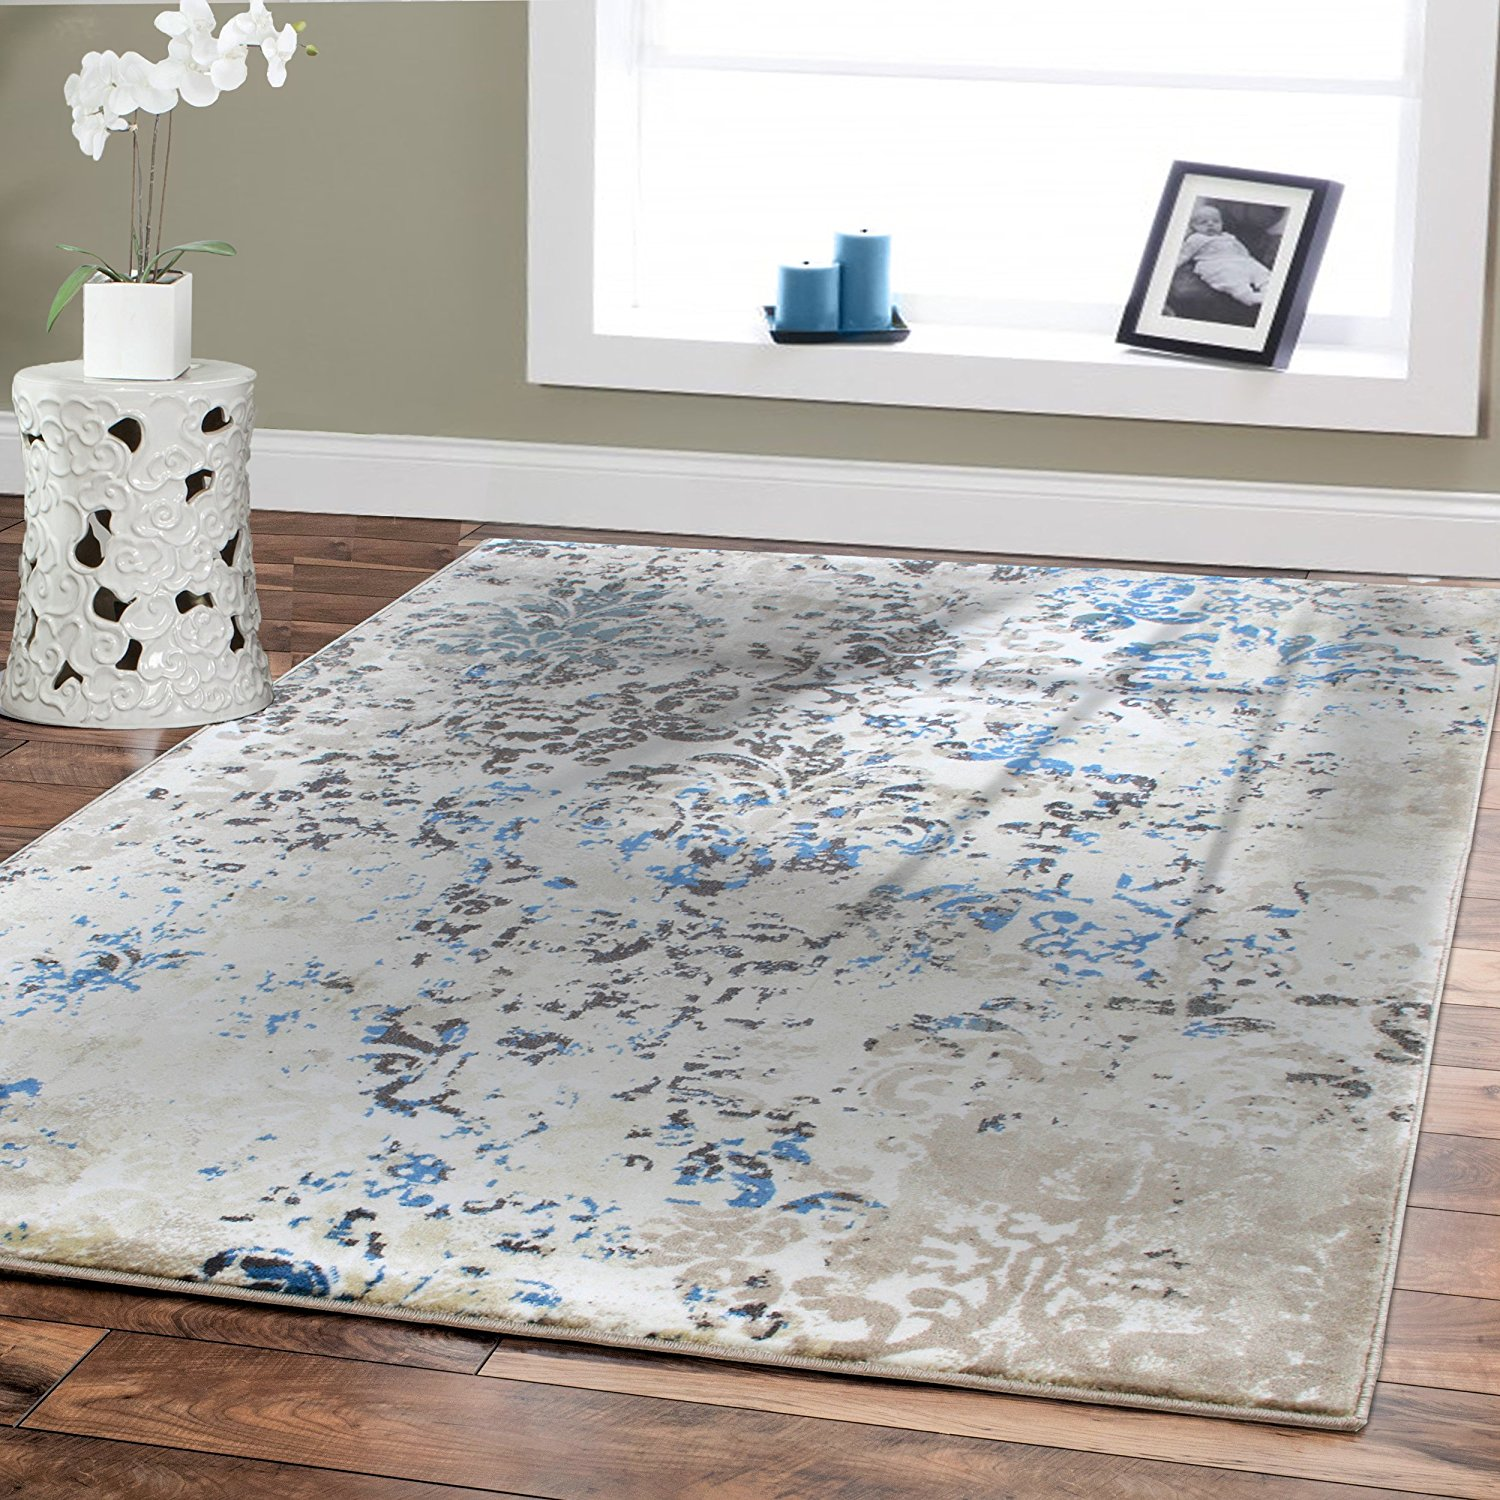 Luxury High Quality Rugs For Living Room 5x8 Cream Blue Dynamix Modern Rug  5x7 Rugs On